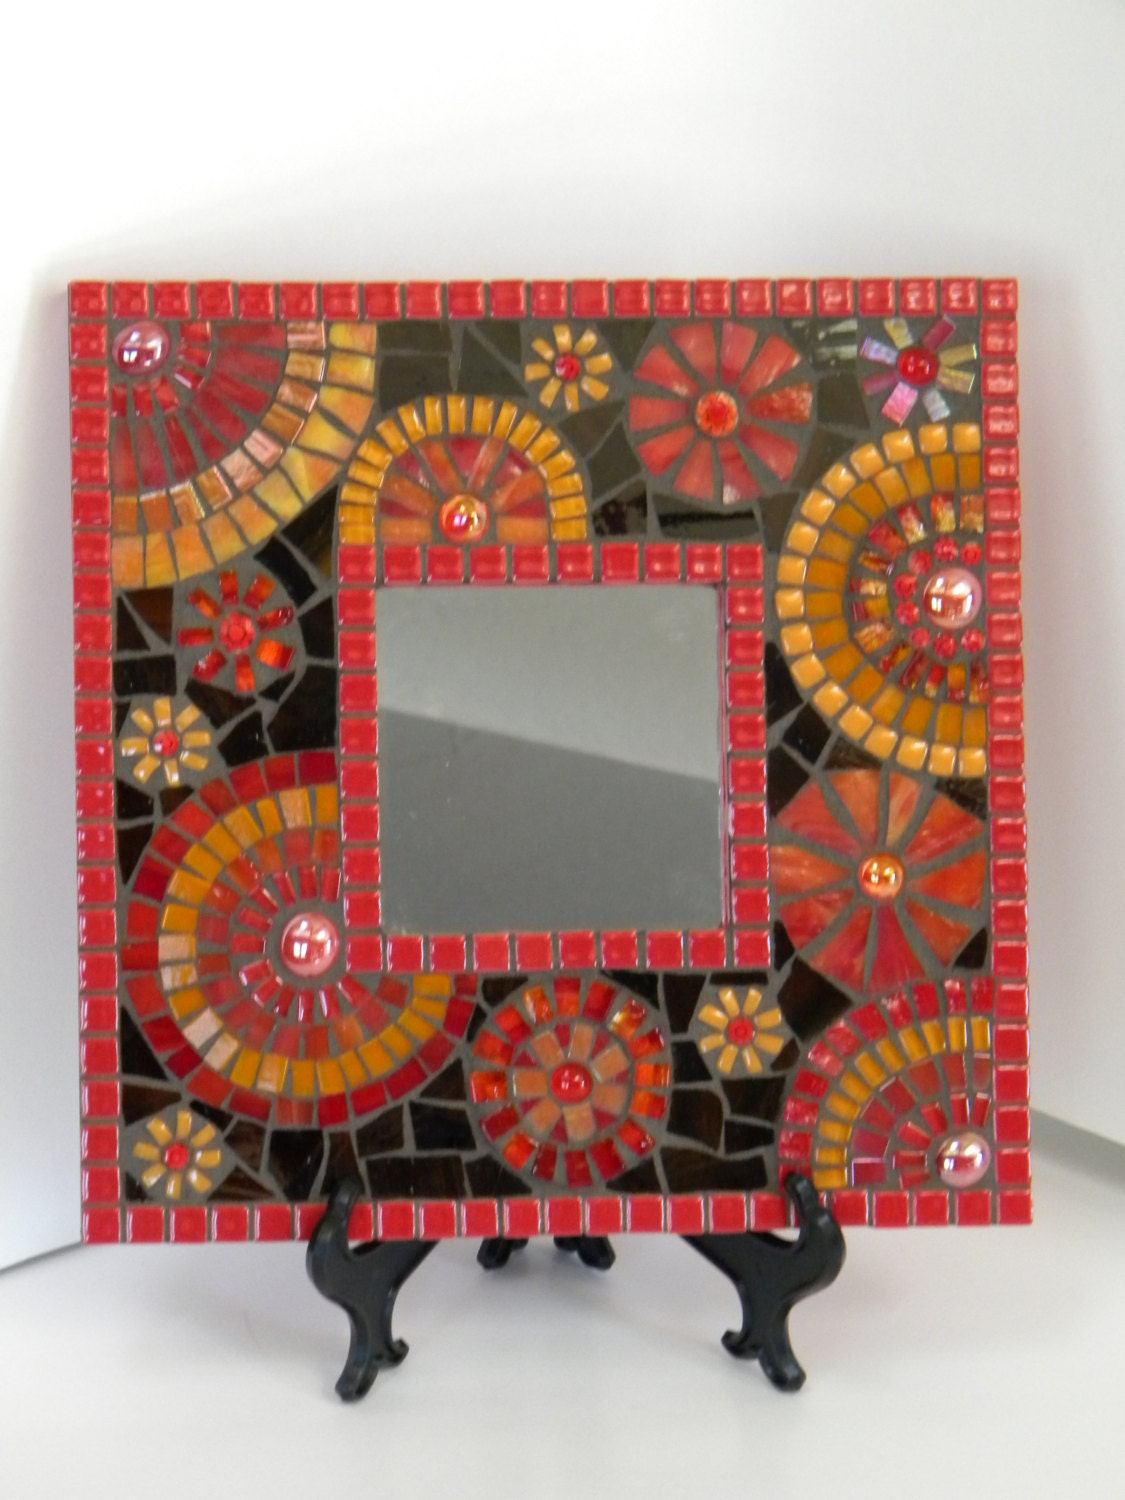 Blazing Red And Orange Square Mosaic Mirror Original Art